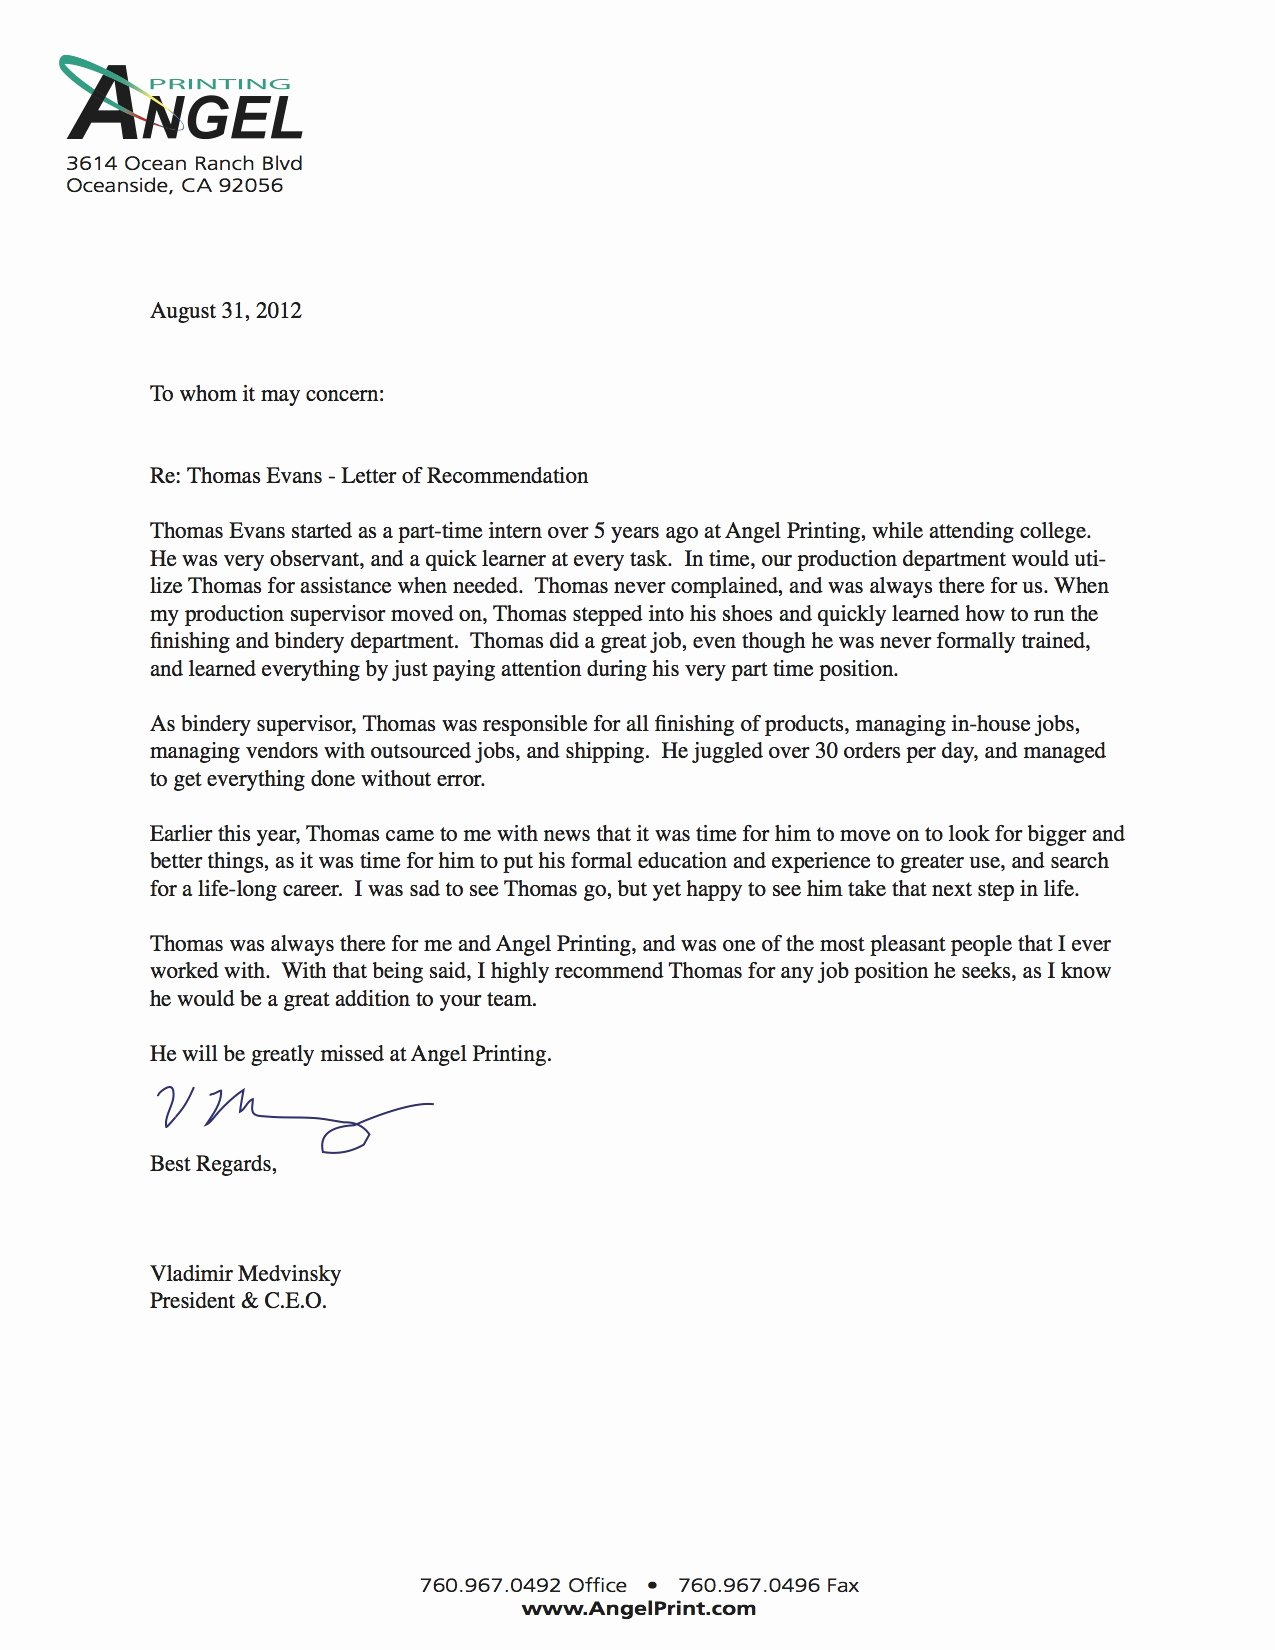 Template Of Letter Of Recommendation Unique Tips for Writing A Letter Of Re Mendation